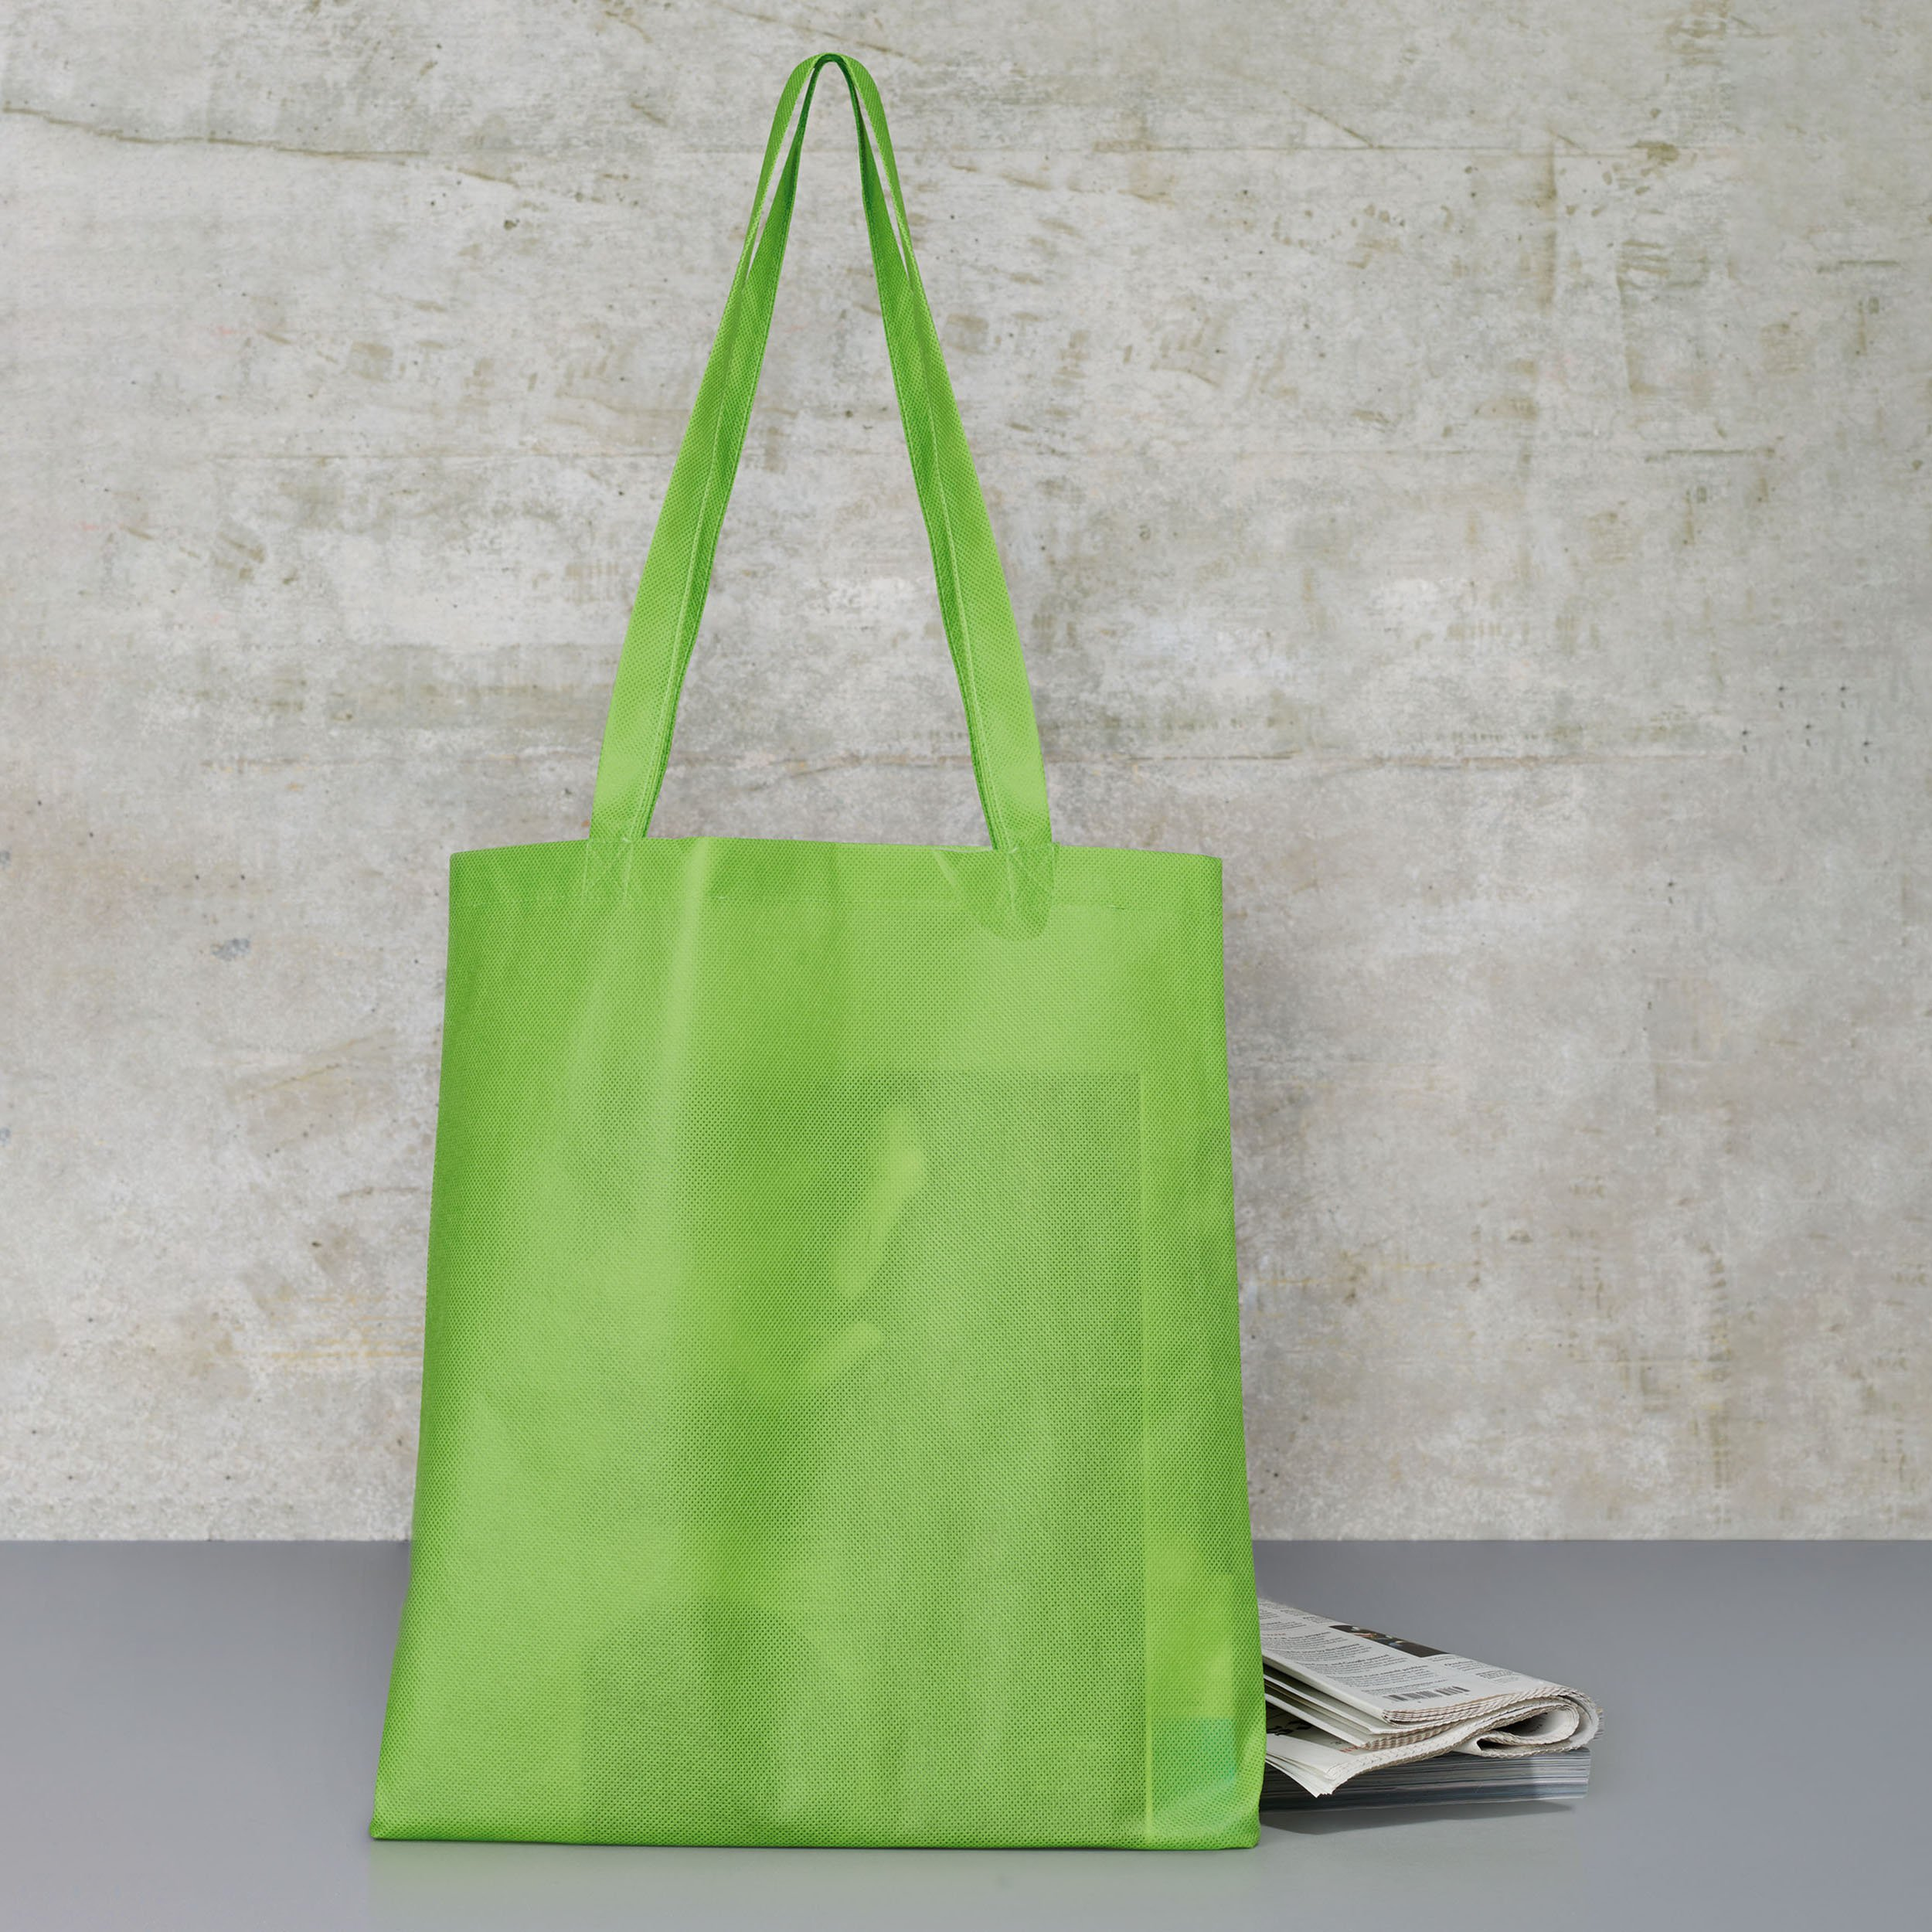 Bags by Jassz Willow tote bag